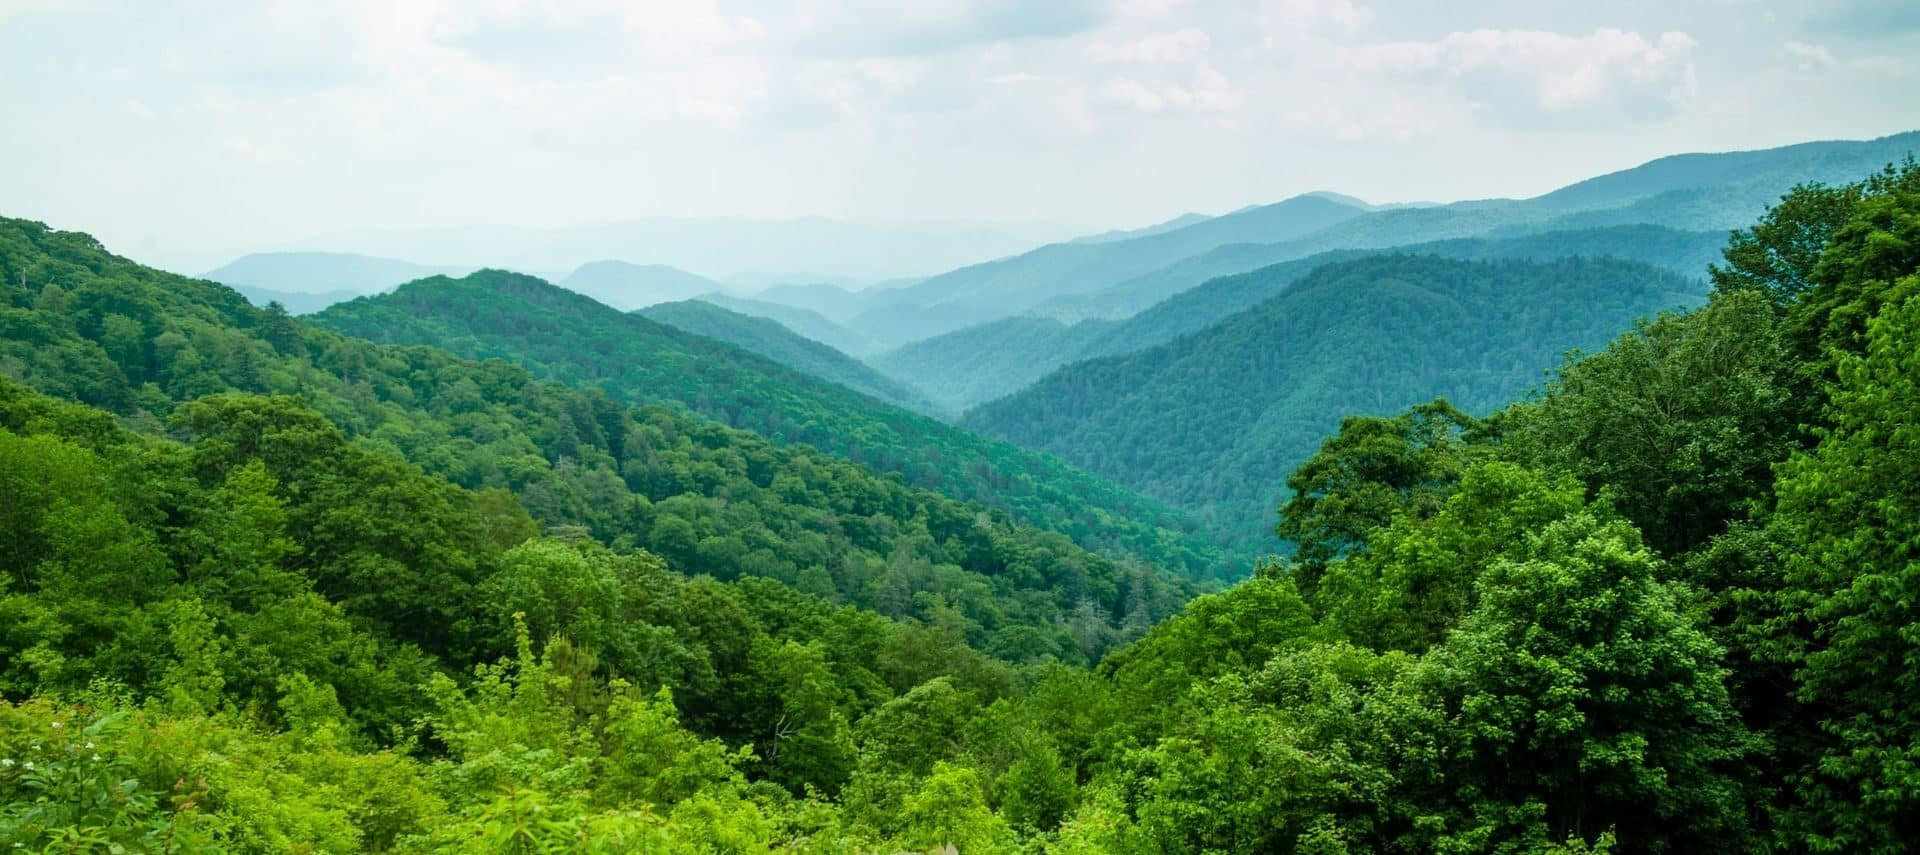 Smoky Mountains in springtime with lush green vegetation and layers of mountains